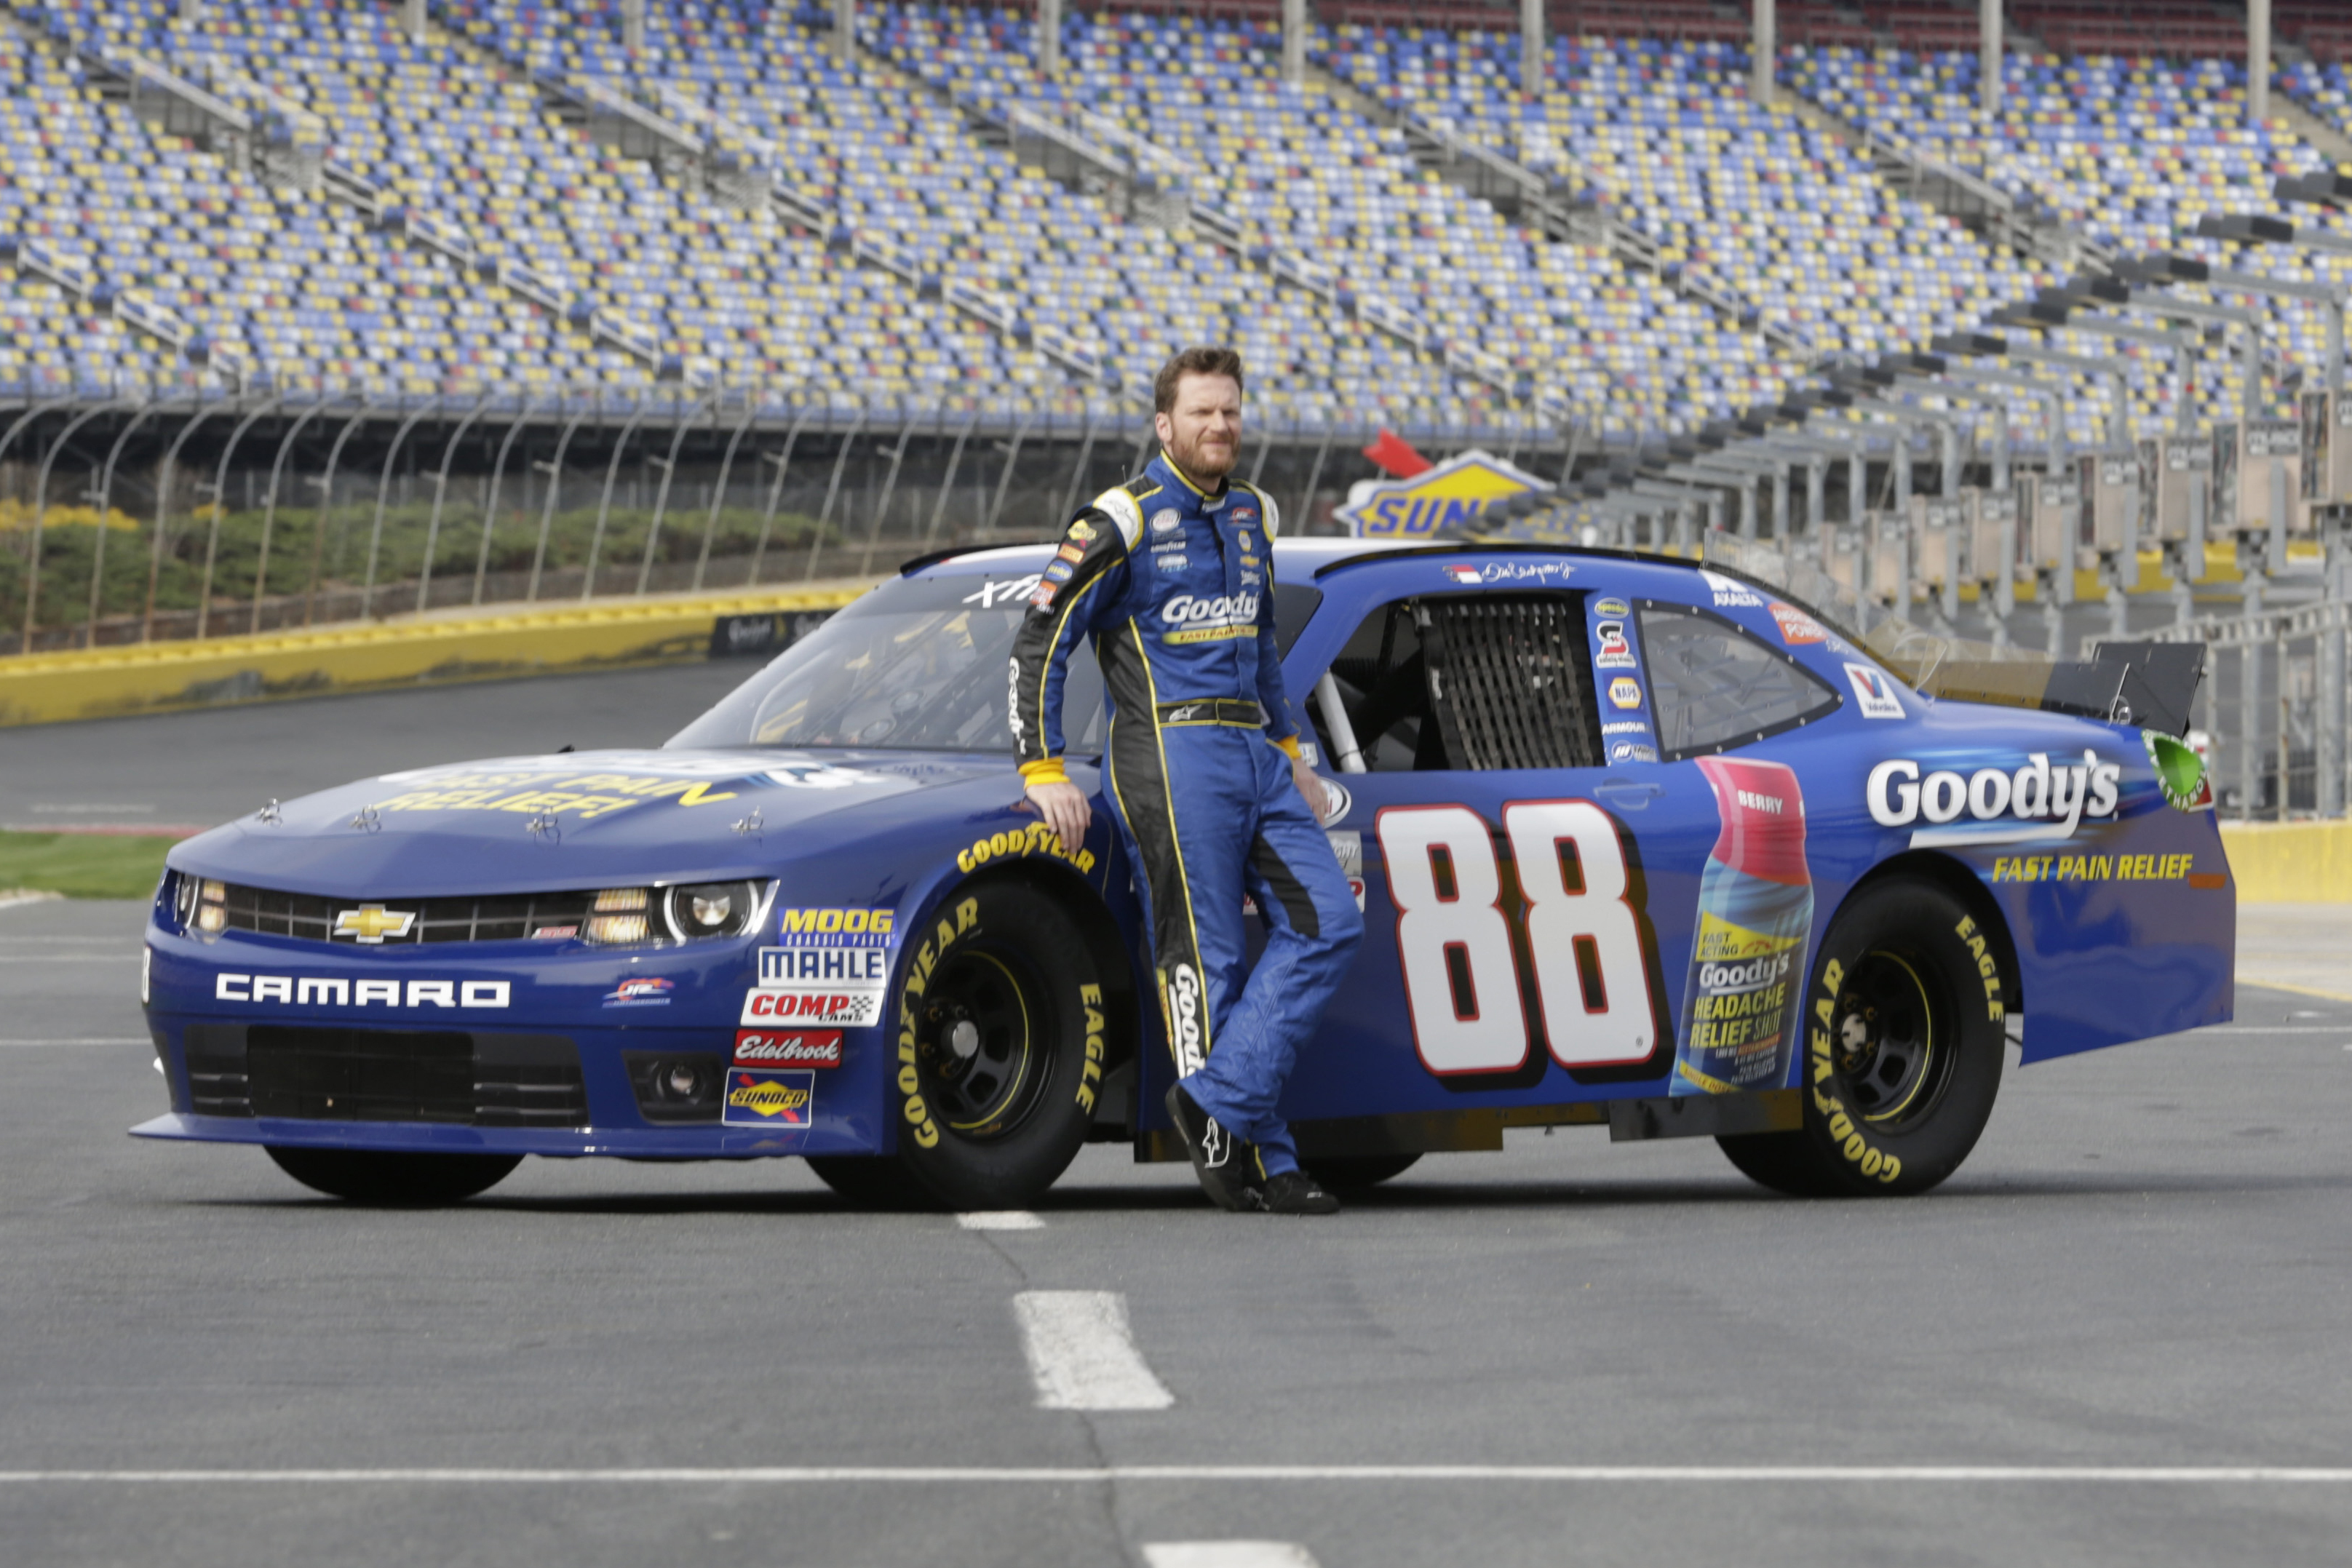 150410-goodys-dale-jr-image